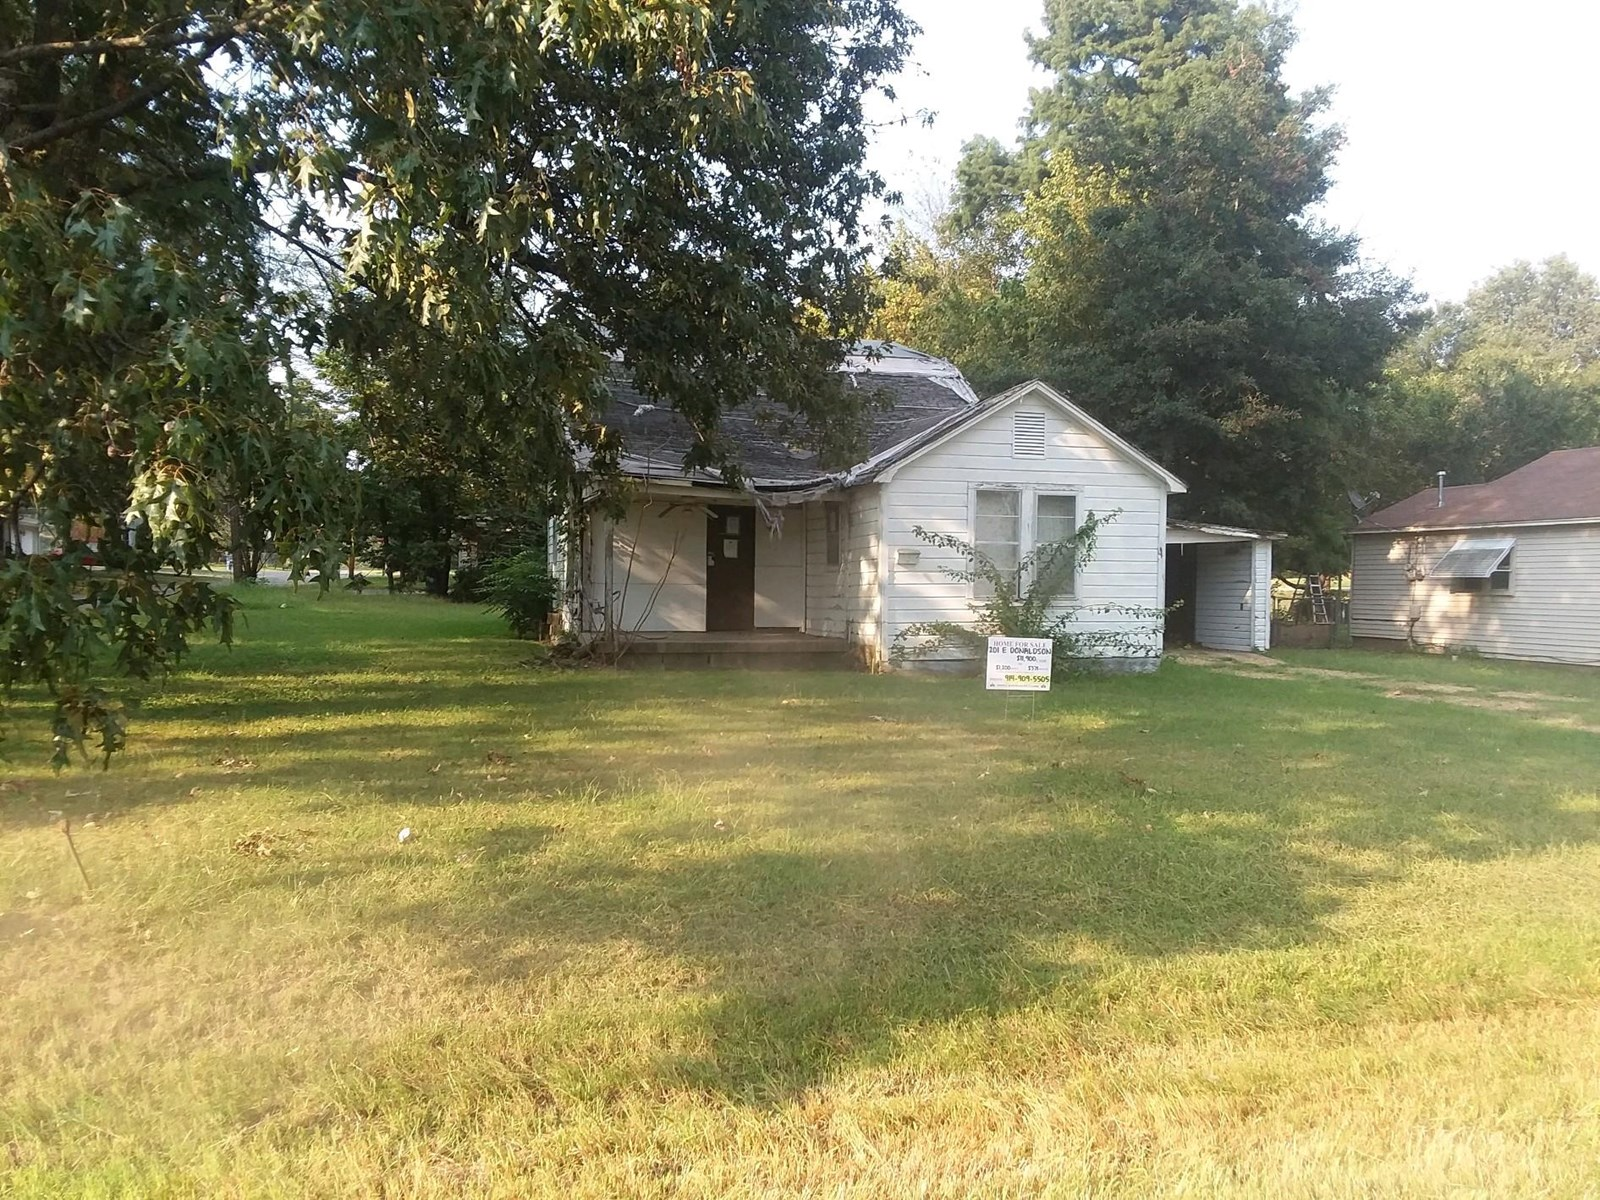 House for sale in Rector AR.